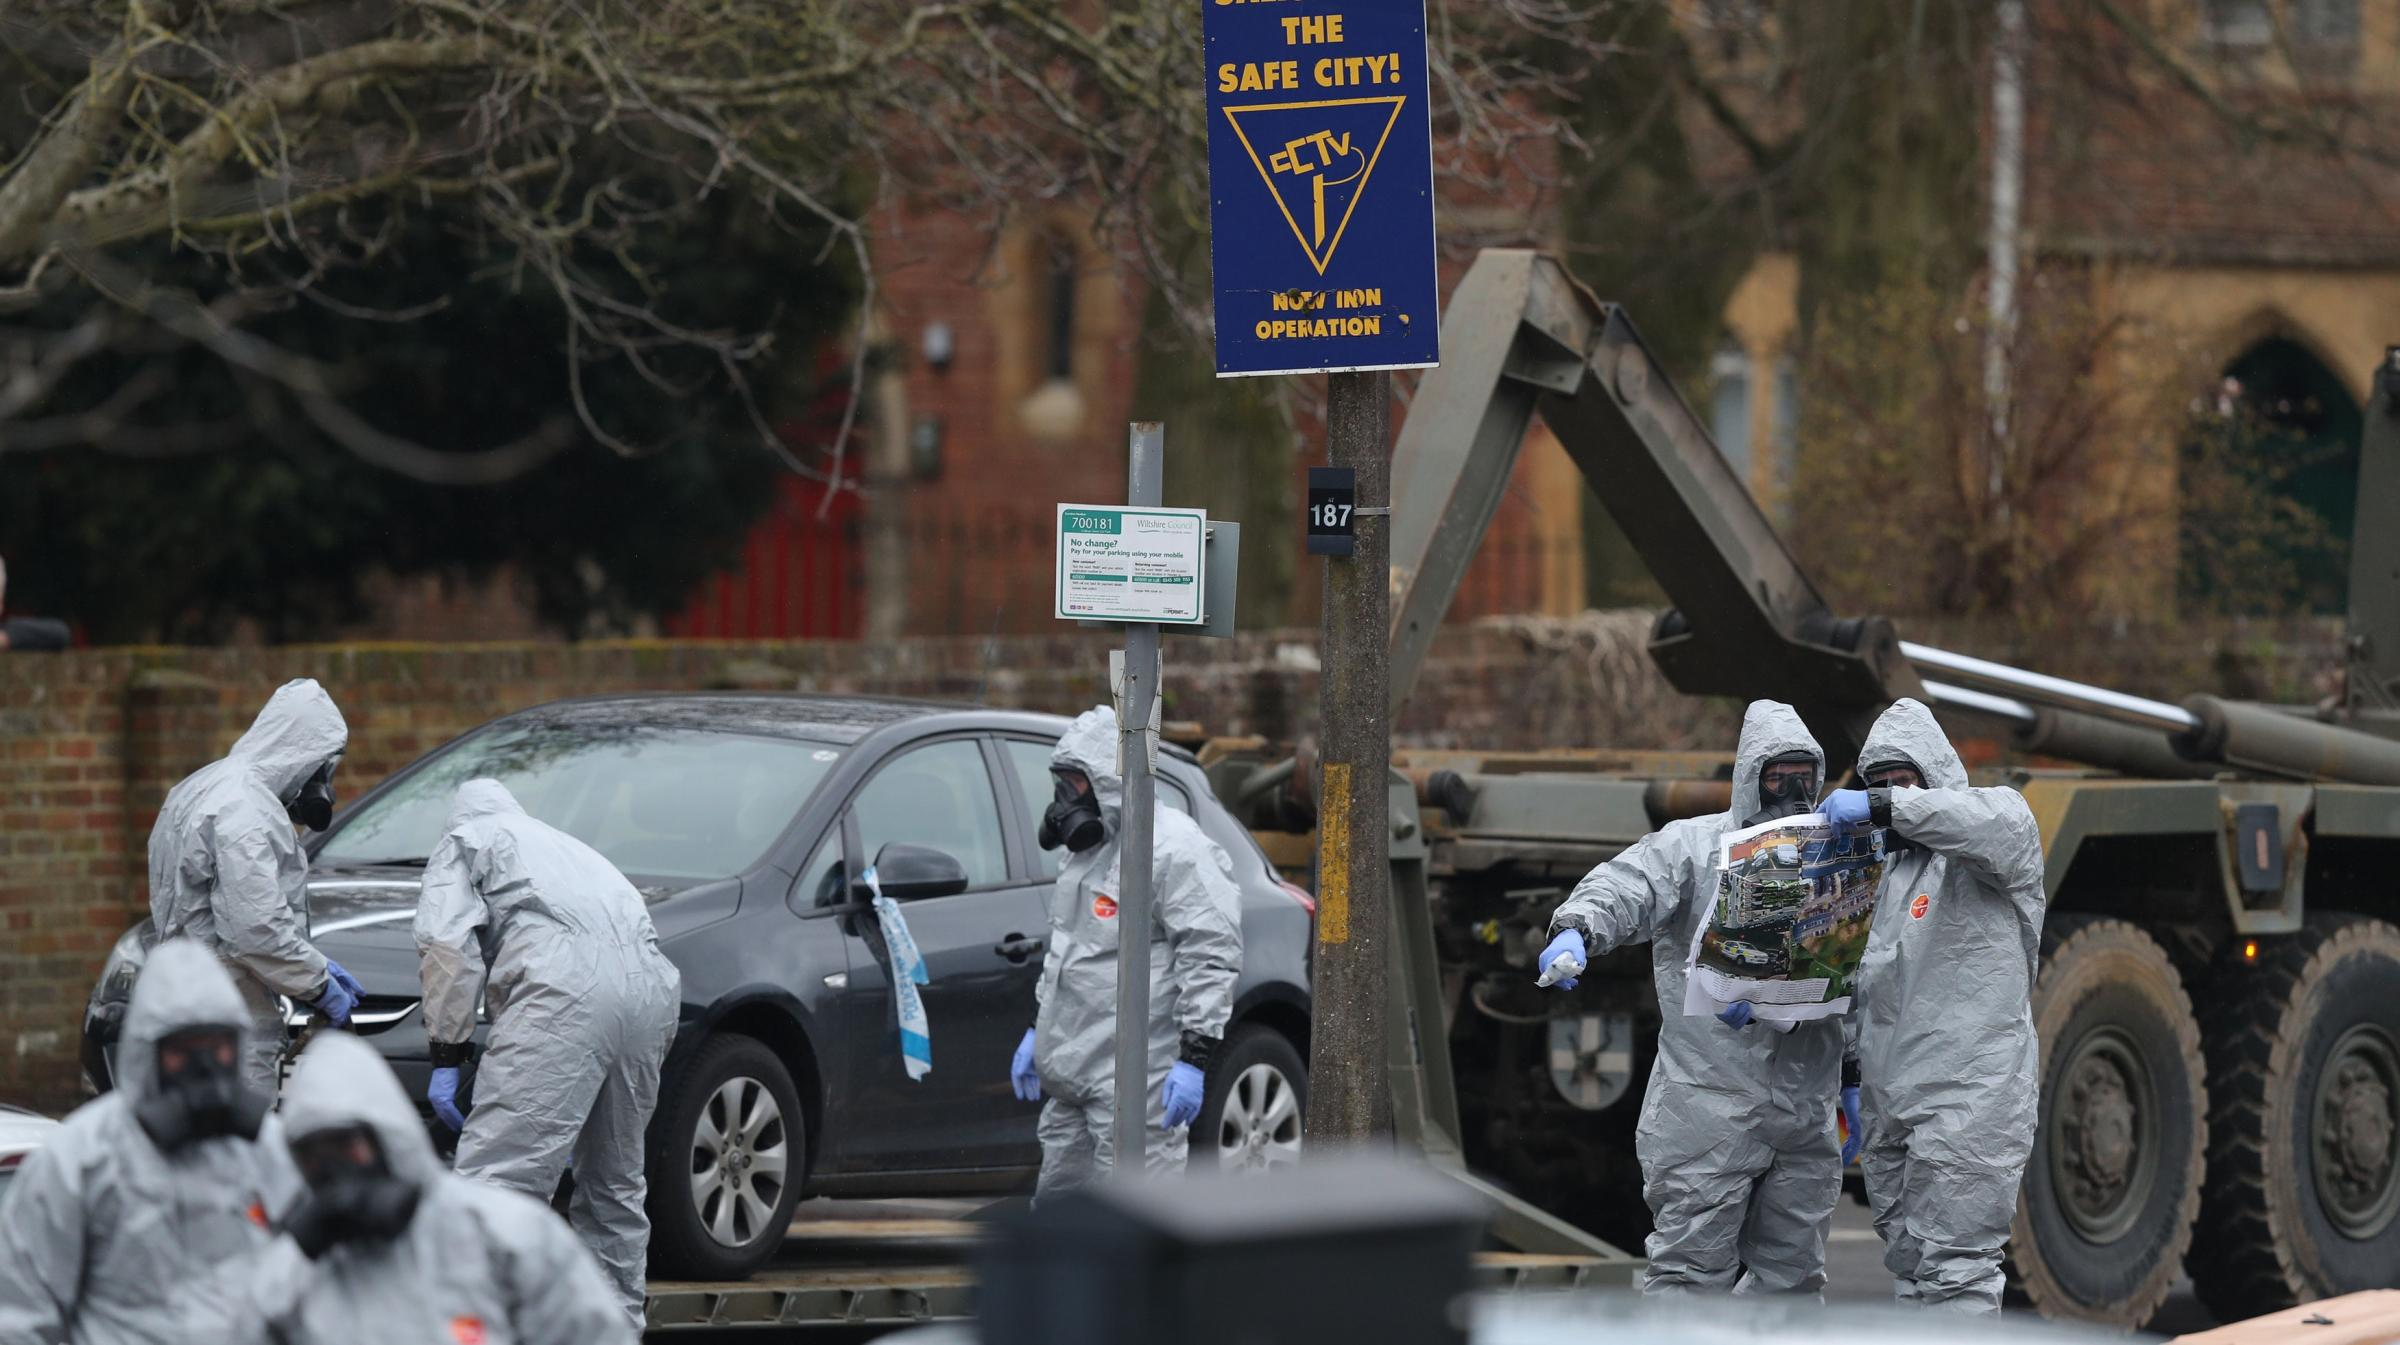 Nerve agent in Salisbury attack 'clearly came from Russia', says Tillerson